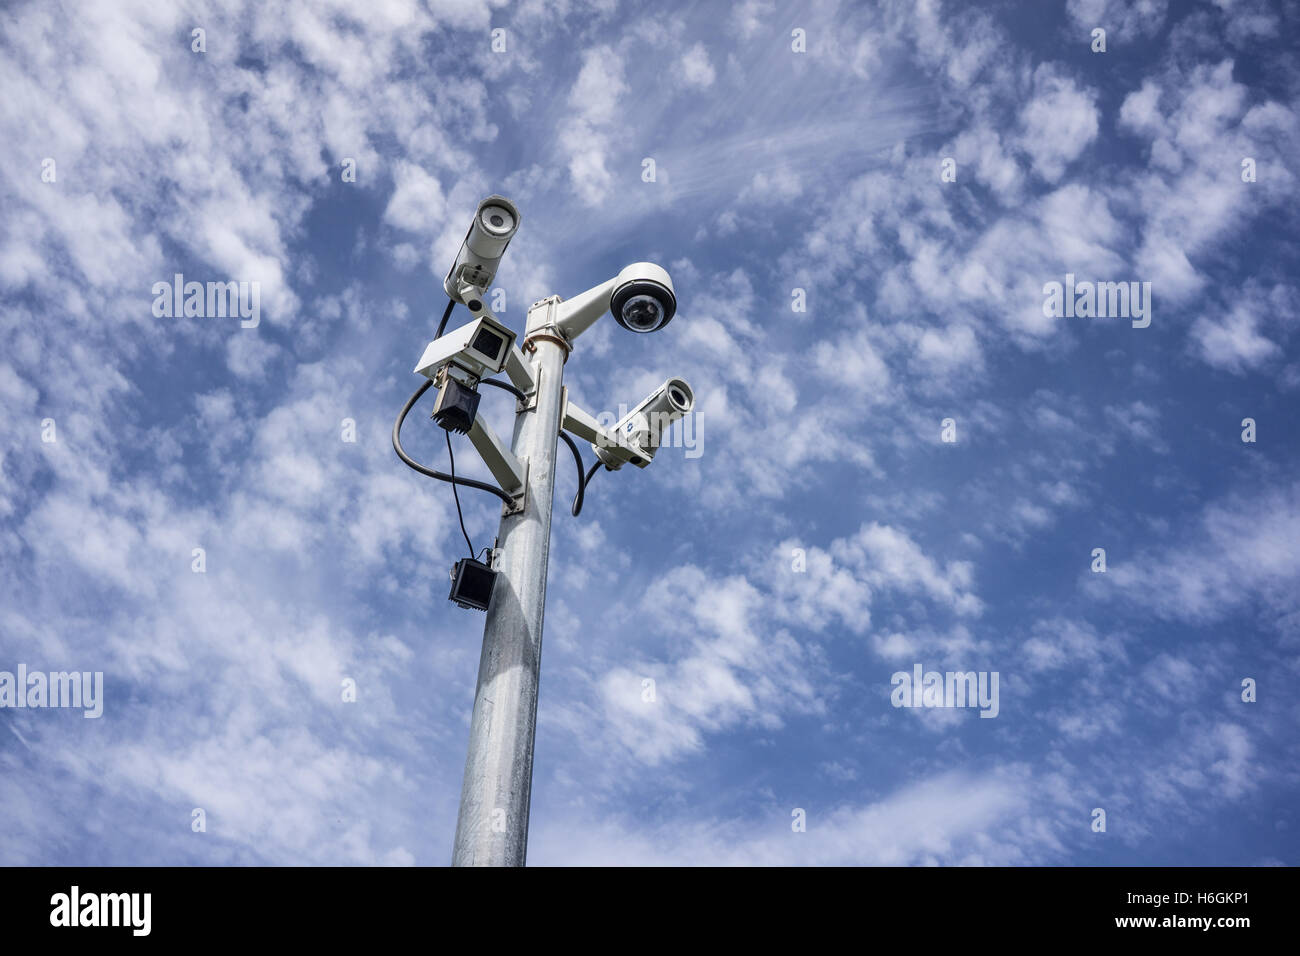 A mast bristling with different types of surveillance cameras - Stock Image